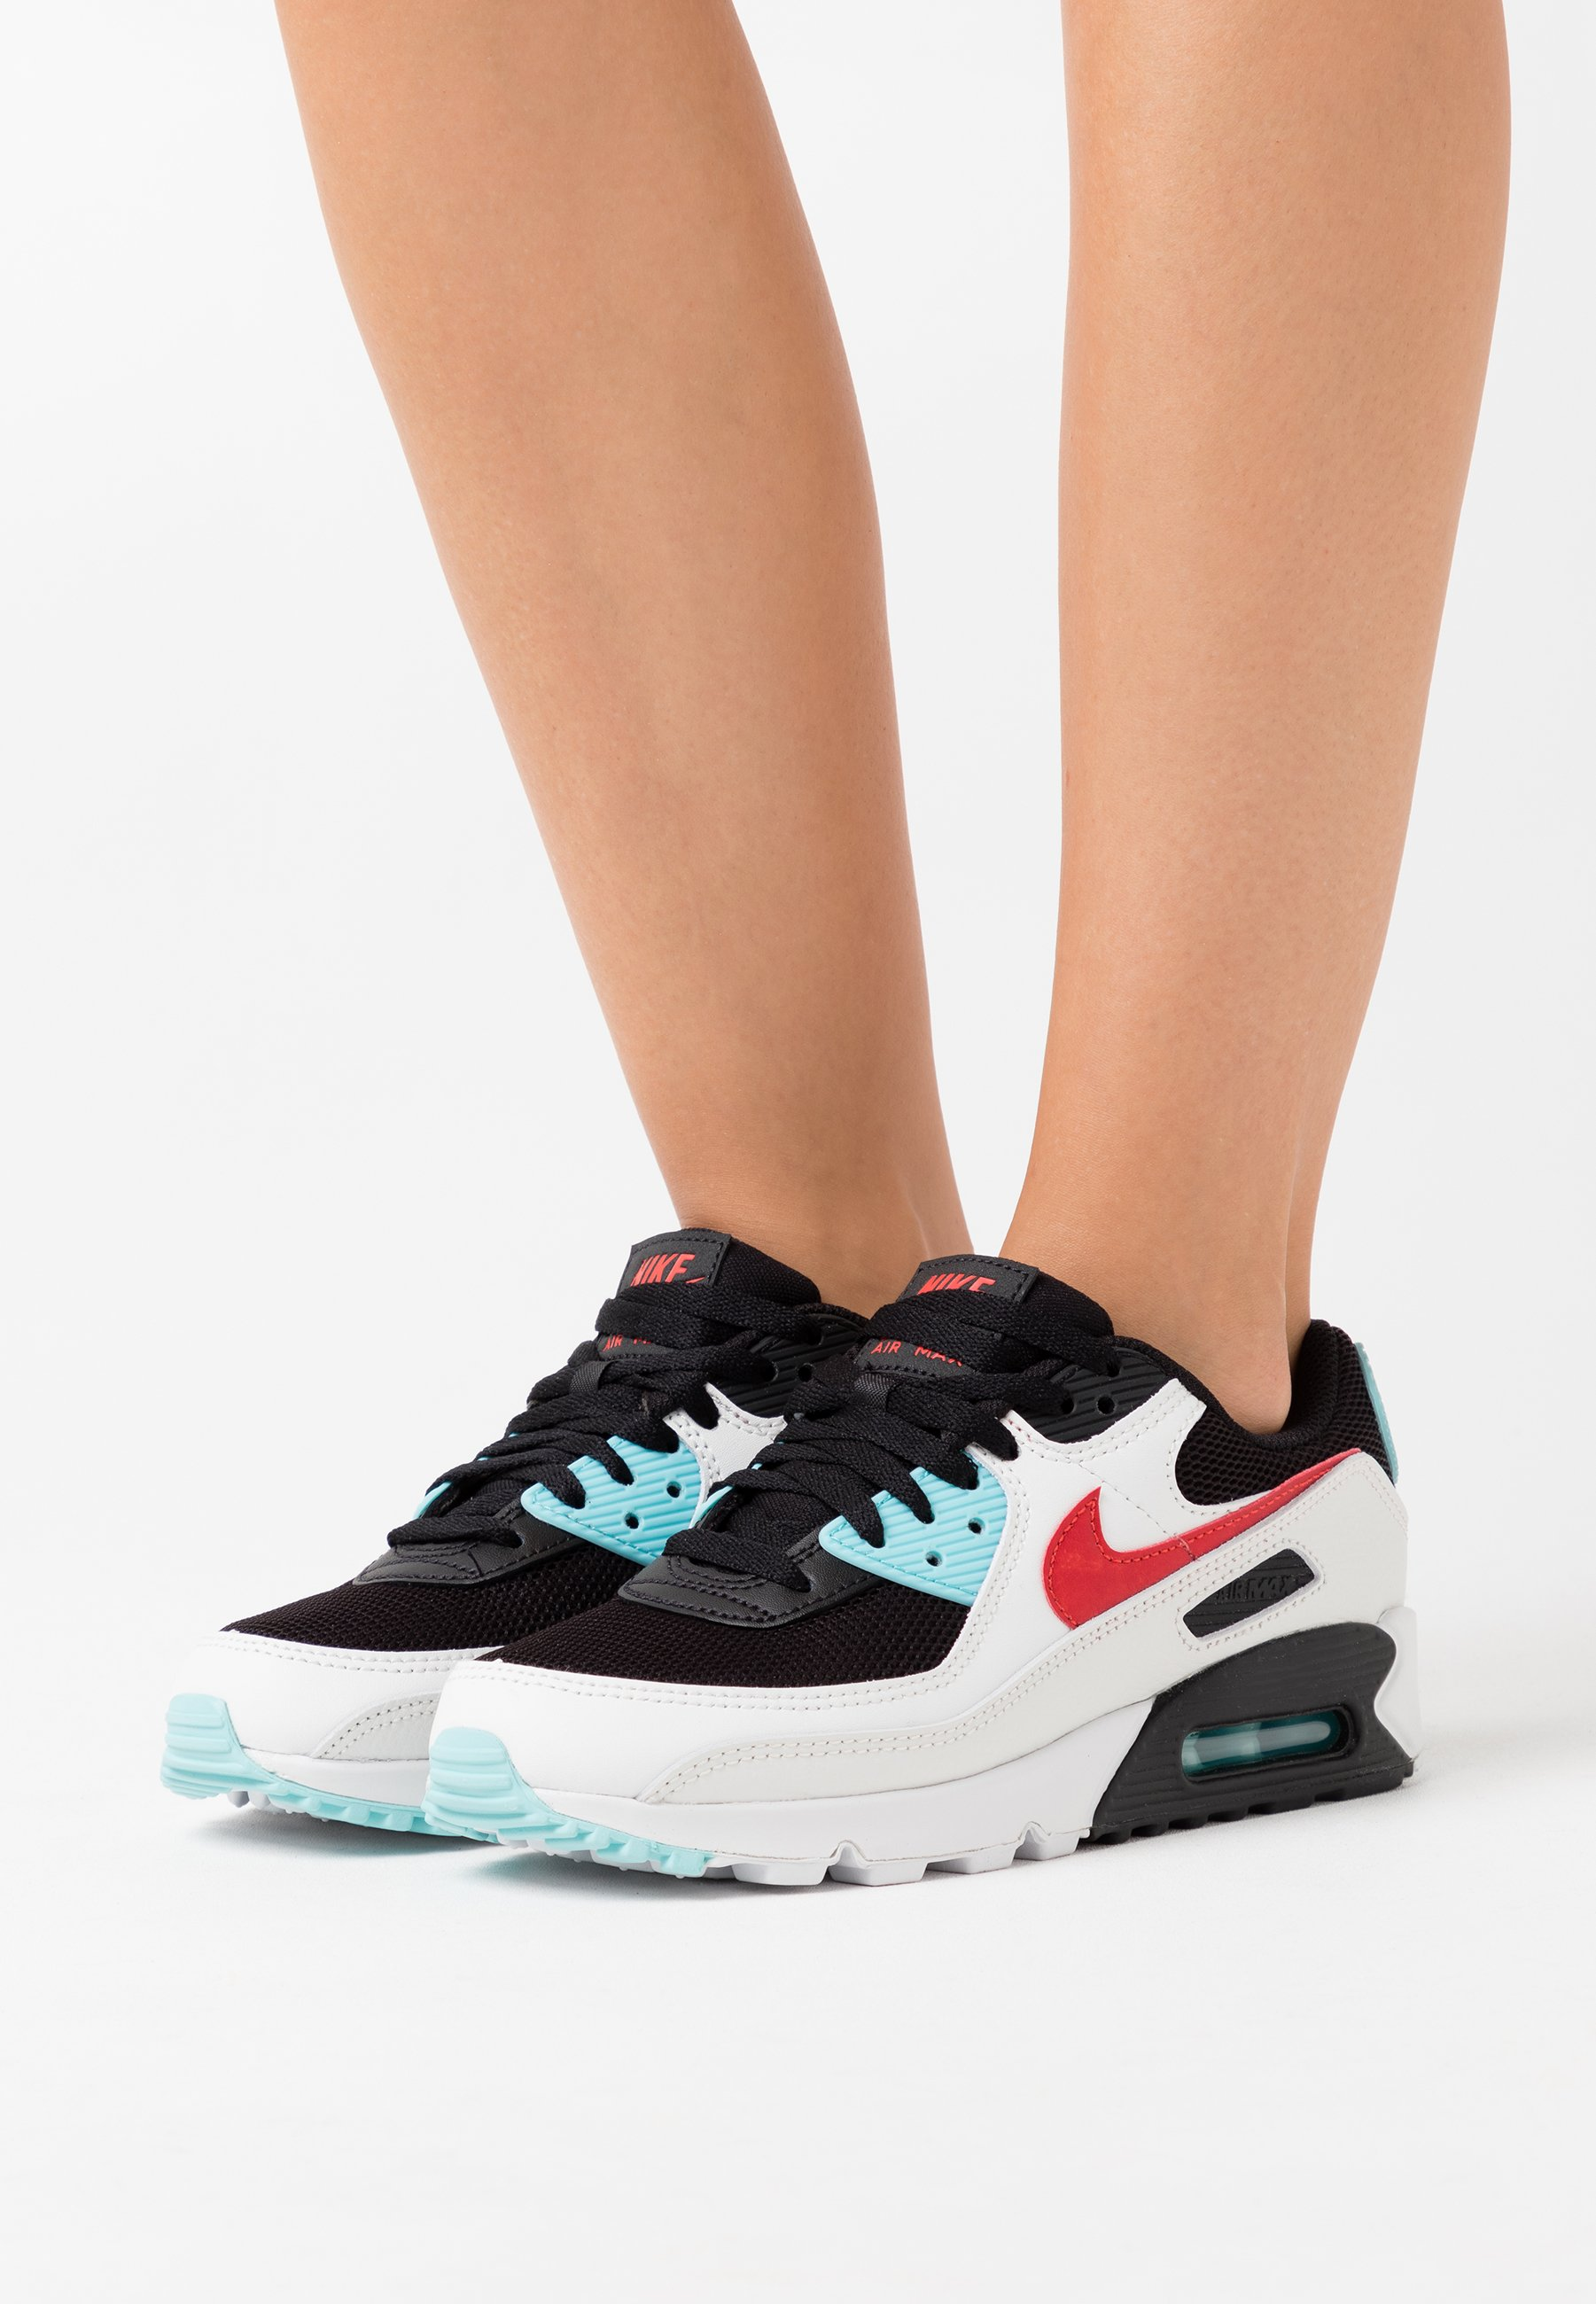 sílaba bronce Efectivamente  Nike Sportswear AIR MAX 90 - Trainers - summit white/chile red/bleached  aqua/black/white - Zalando.co.uk